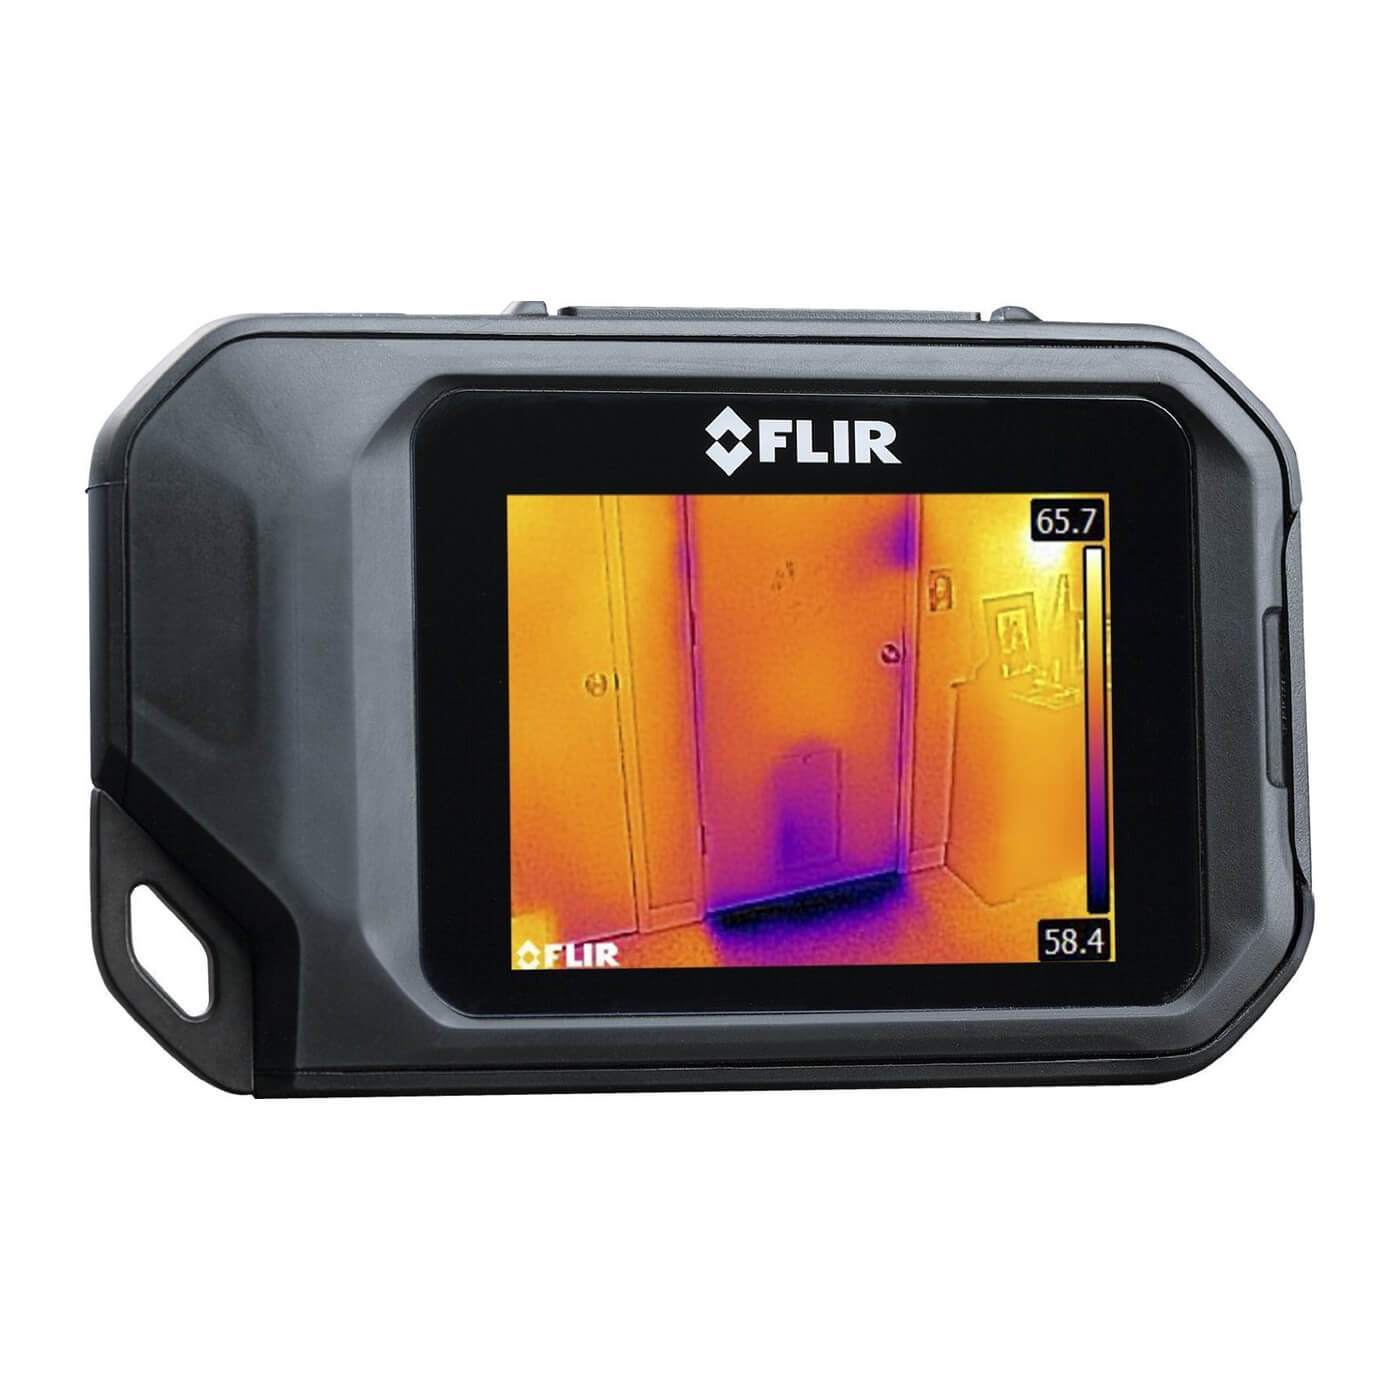 Flir C2 pocket thermal imaging camera